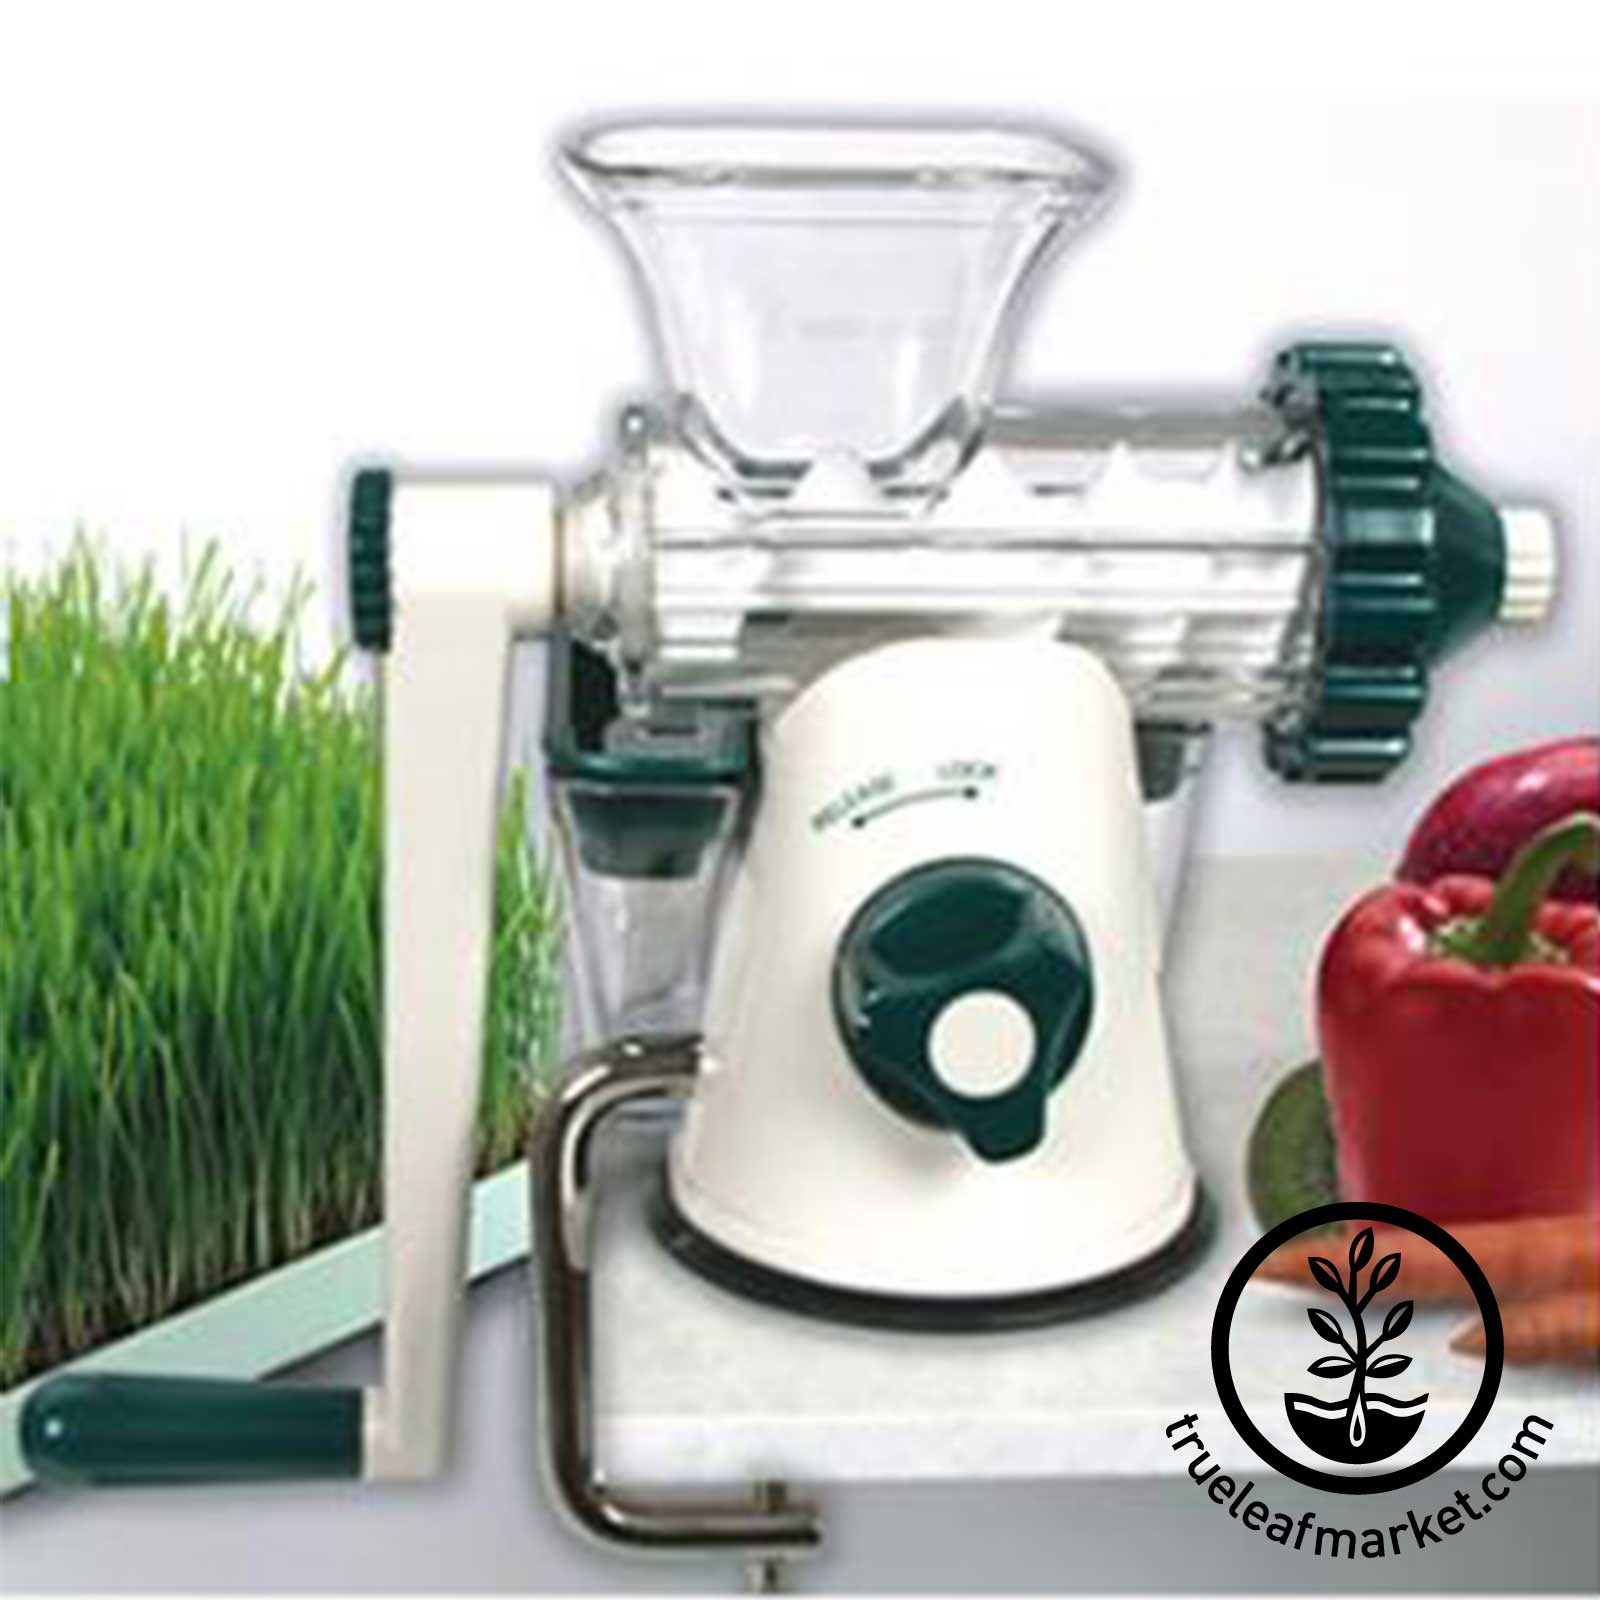 Lexen Healthy Manual Juicer  Lexen juicer, wheatgrass juicer, manual wheatgrass juicer, hand wheat grass juicer